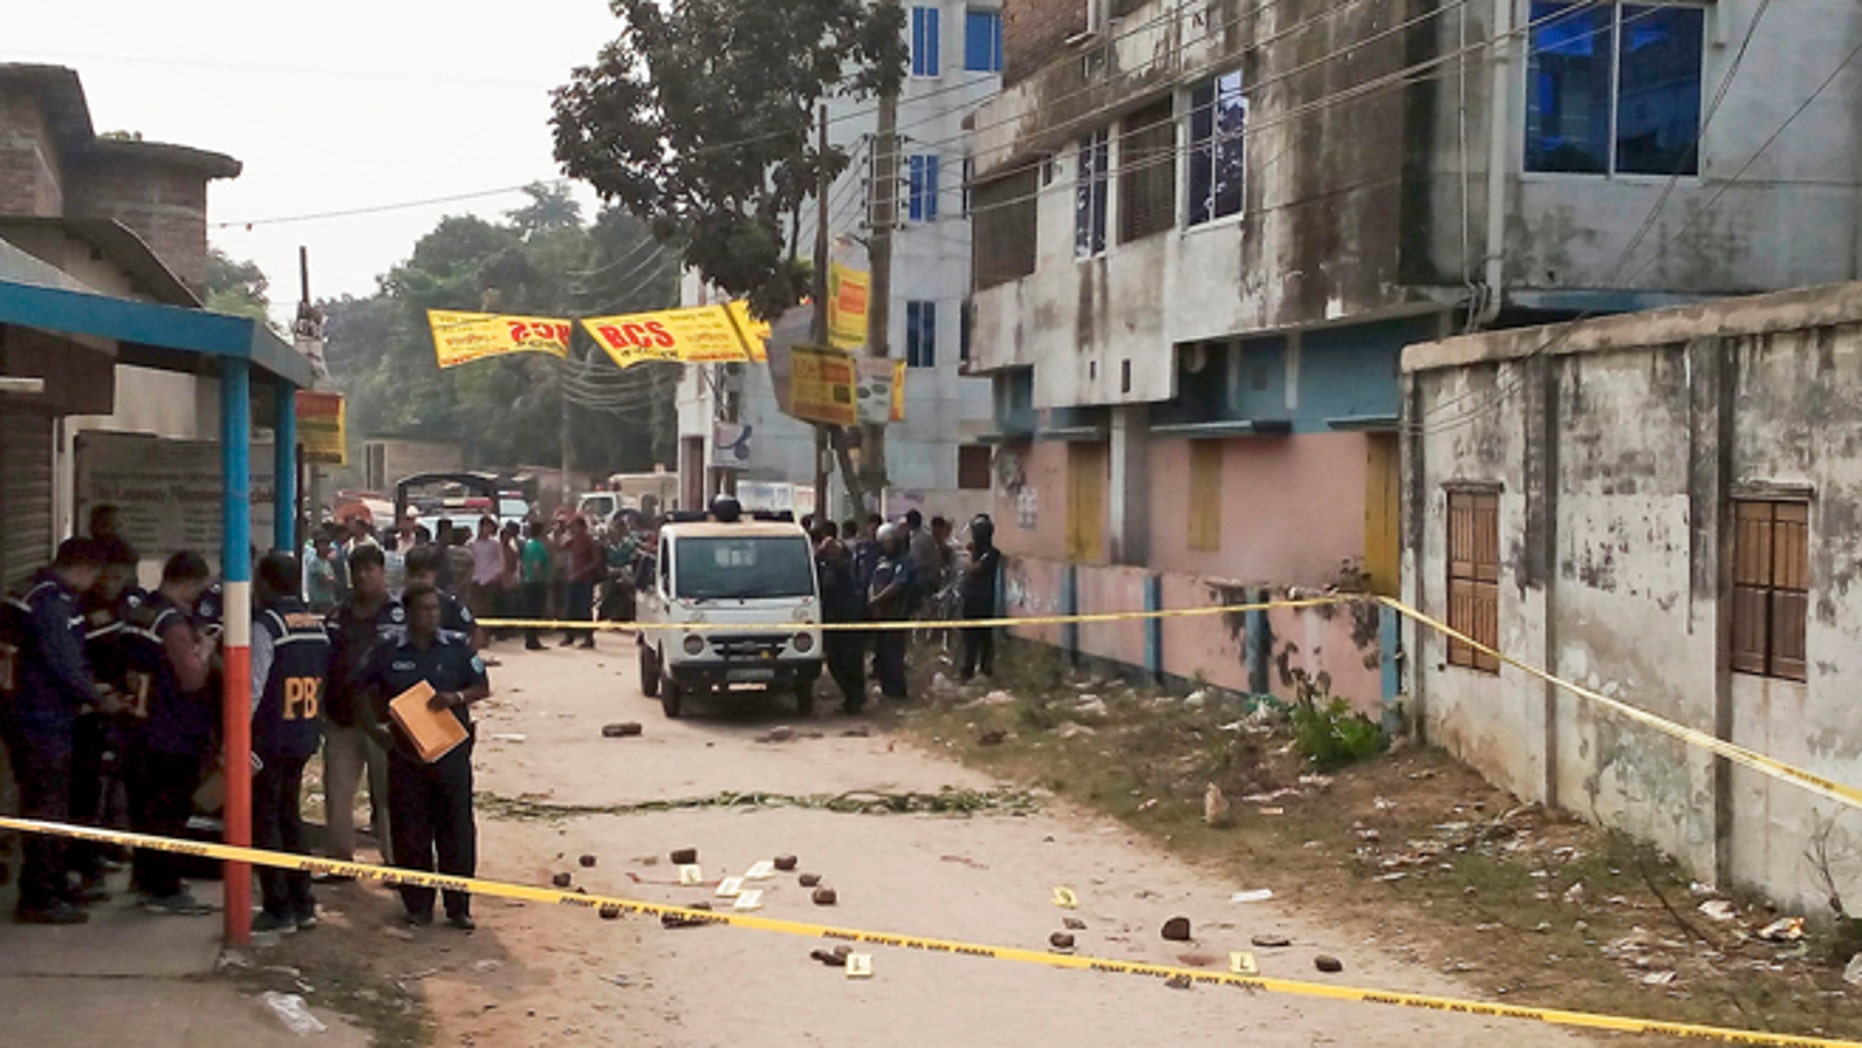 Nov. 18, 2015: Members of Bangladesh's Police Bureau of Investigation stand by the site where an Italian priest was attacked.